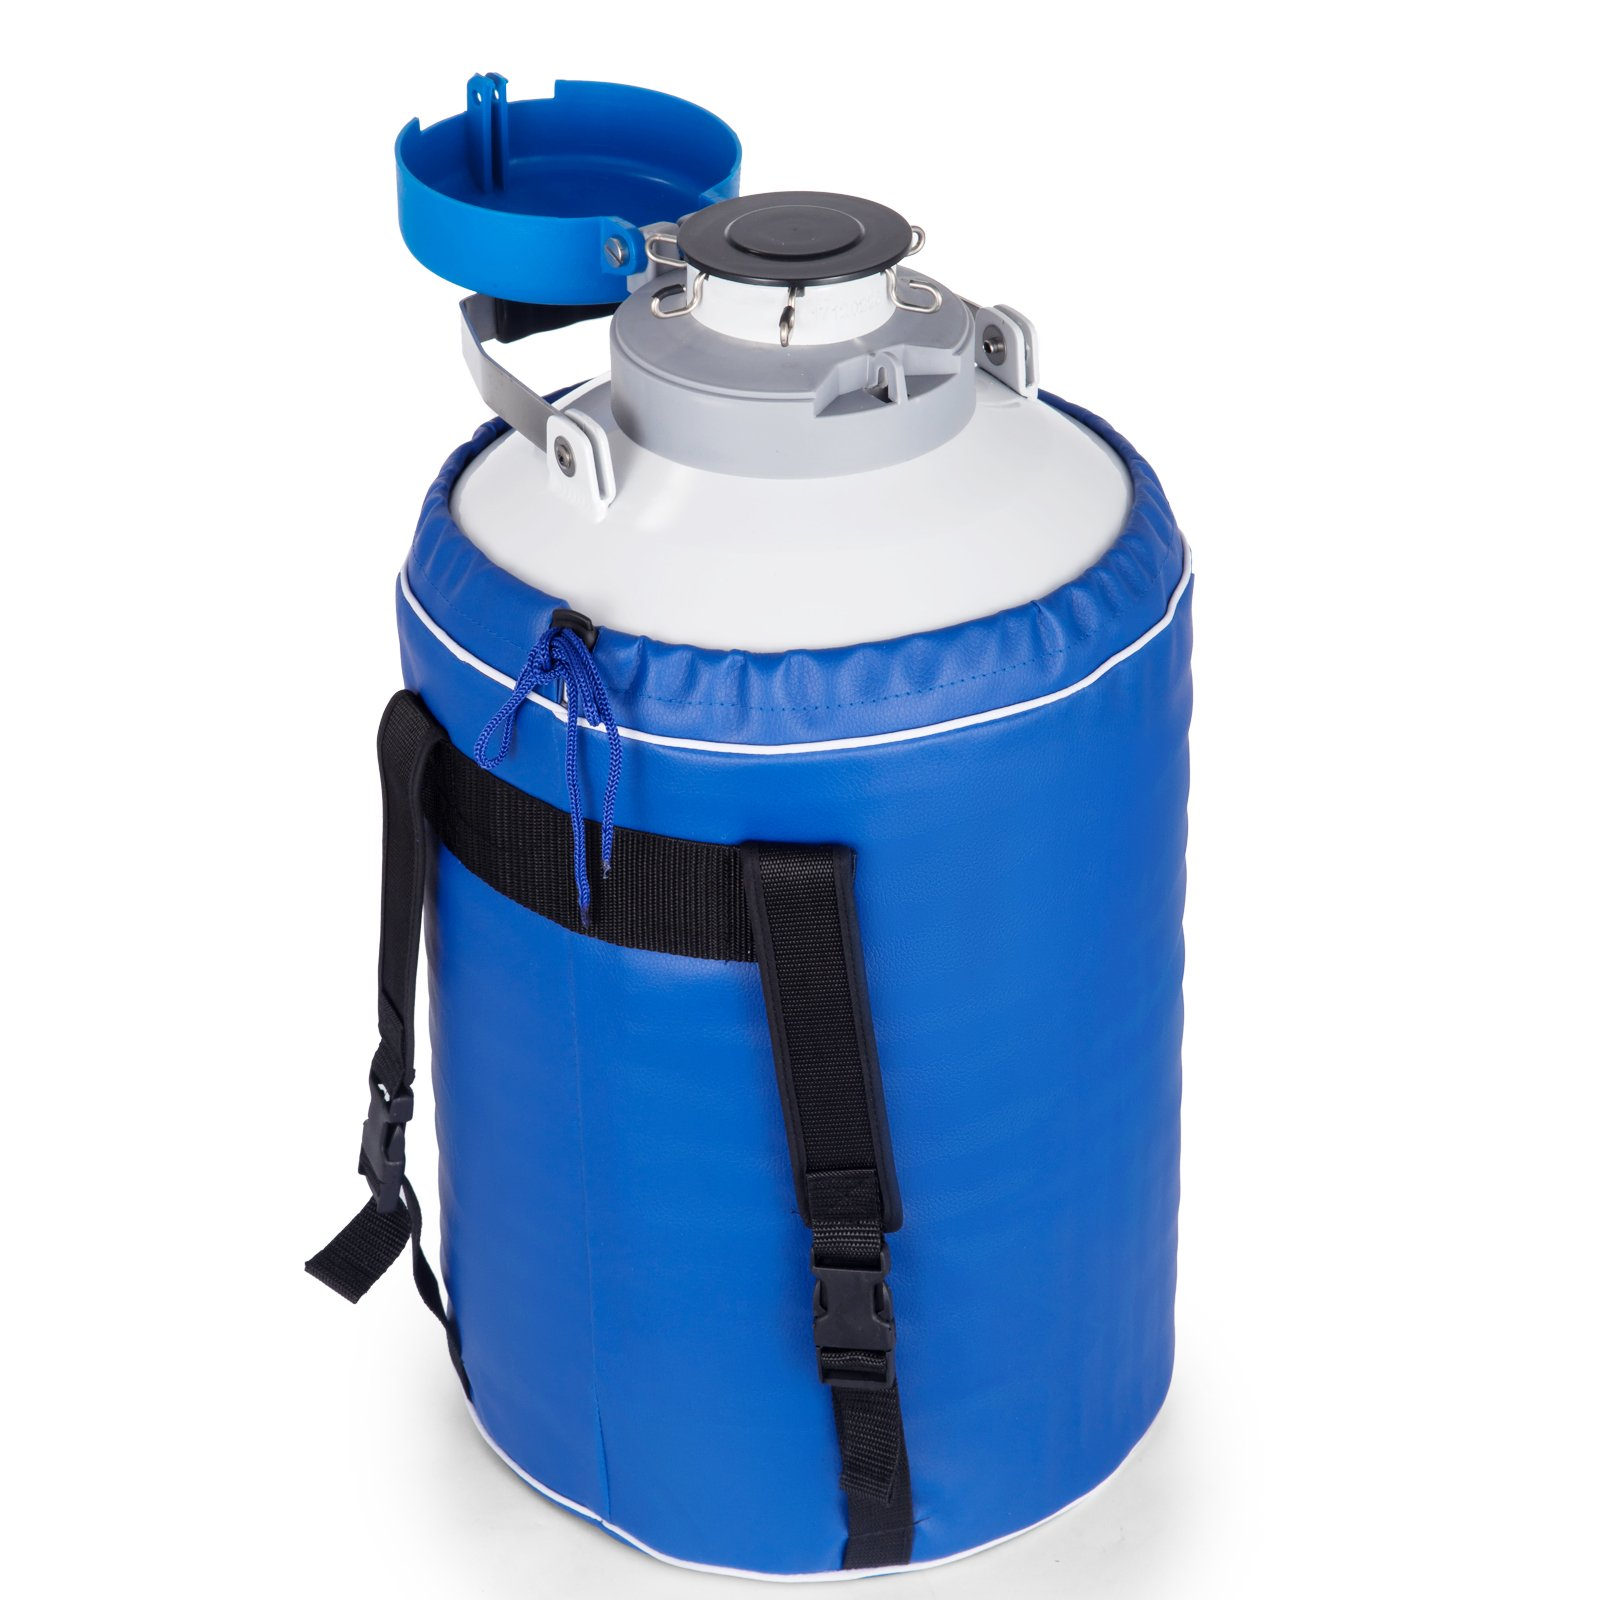 BestEquip Liquid Nitrogen Container 6L Liquid Nitrogen Storage Tank Static Cryogenic Container with 6 Canisters